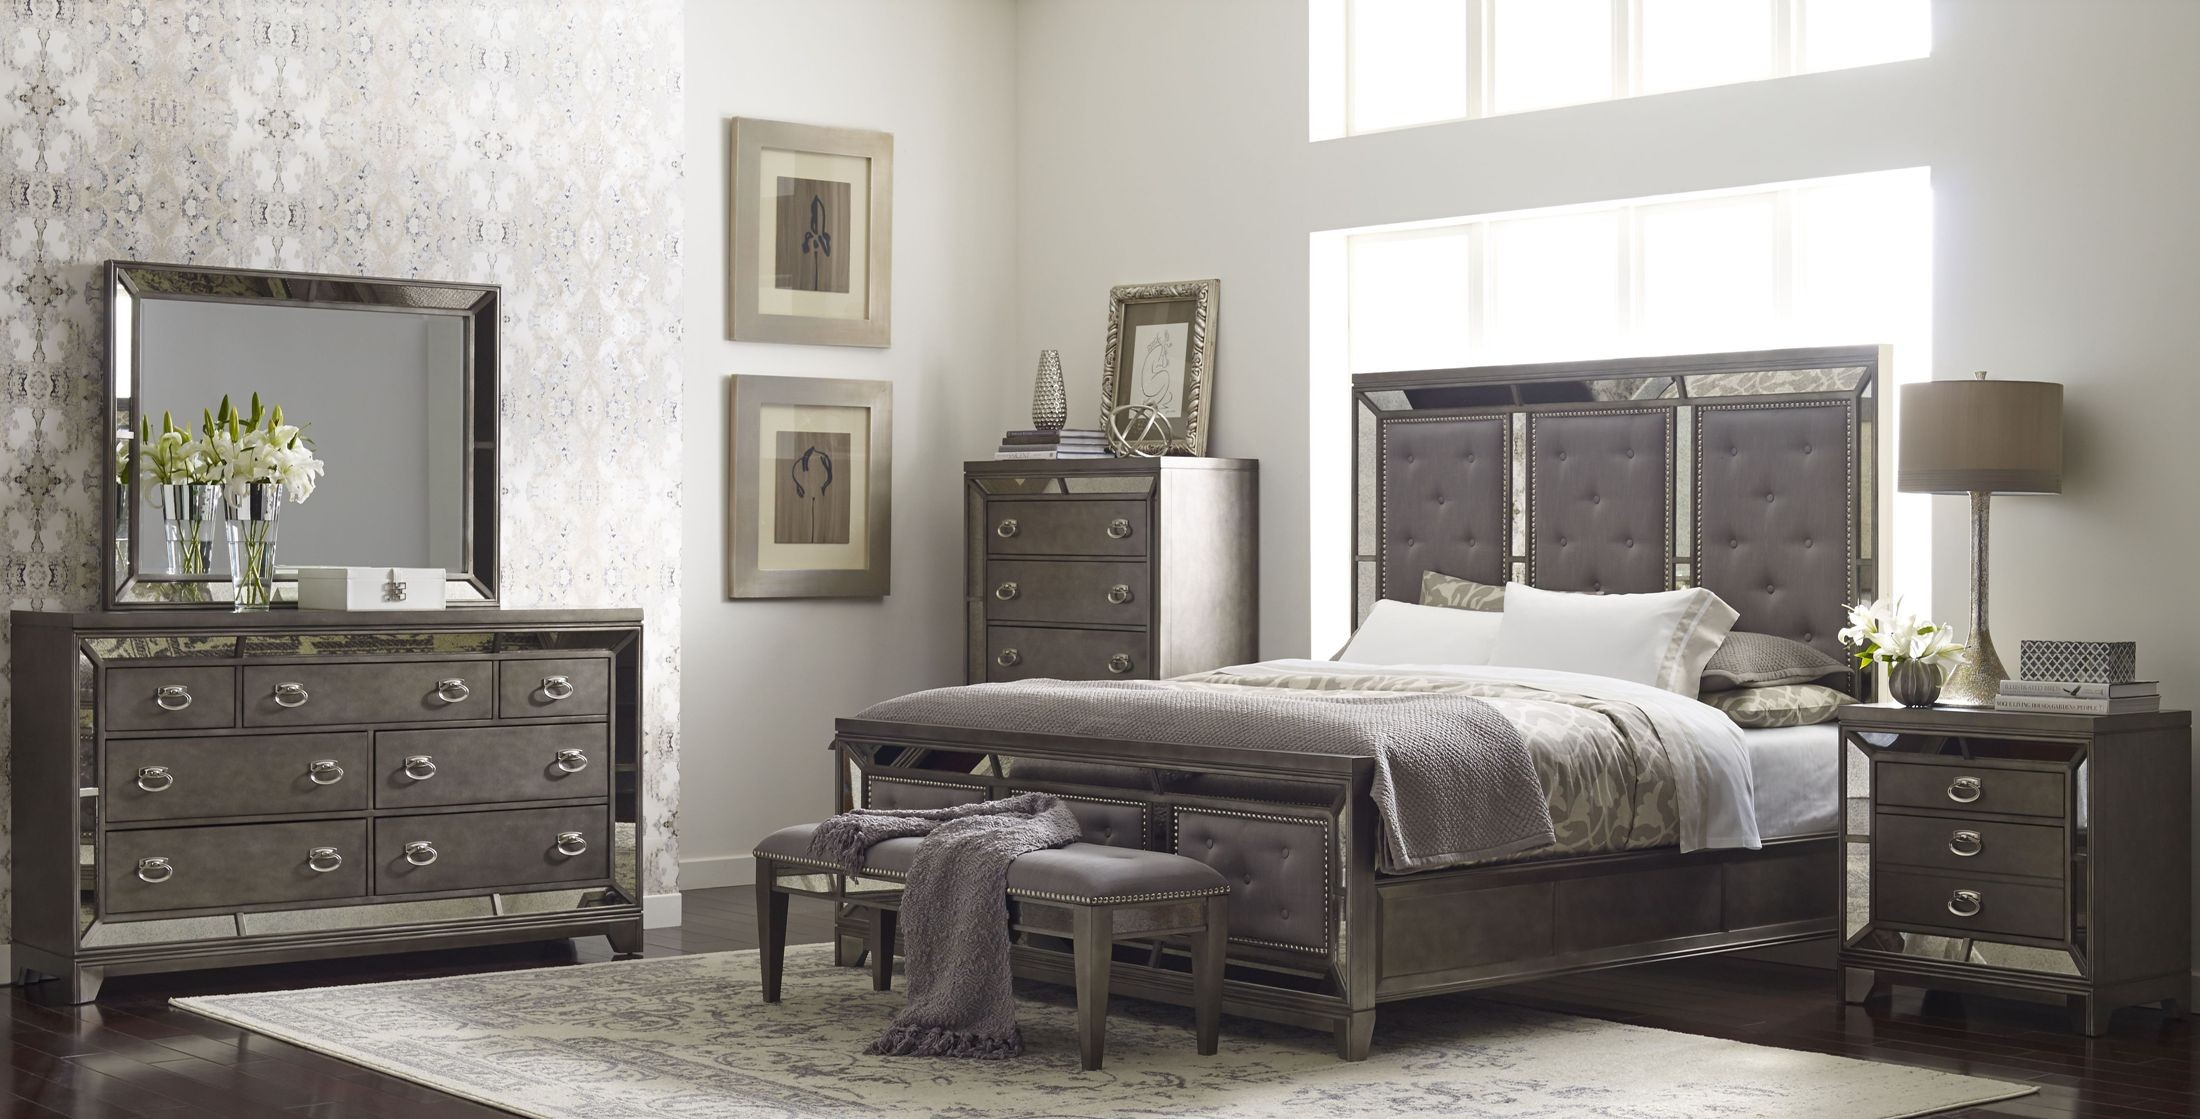 Lenox Platinum Painted Upholstered Panel Bedroom Set From Avalon Furniture Coleman Furniture